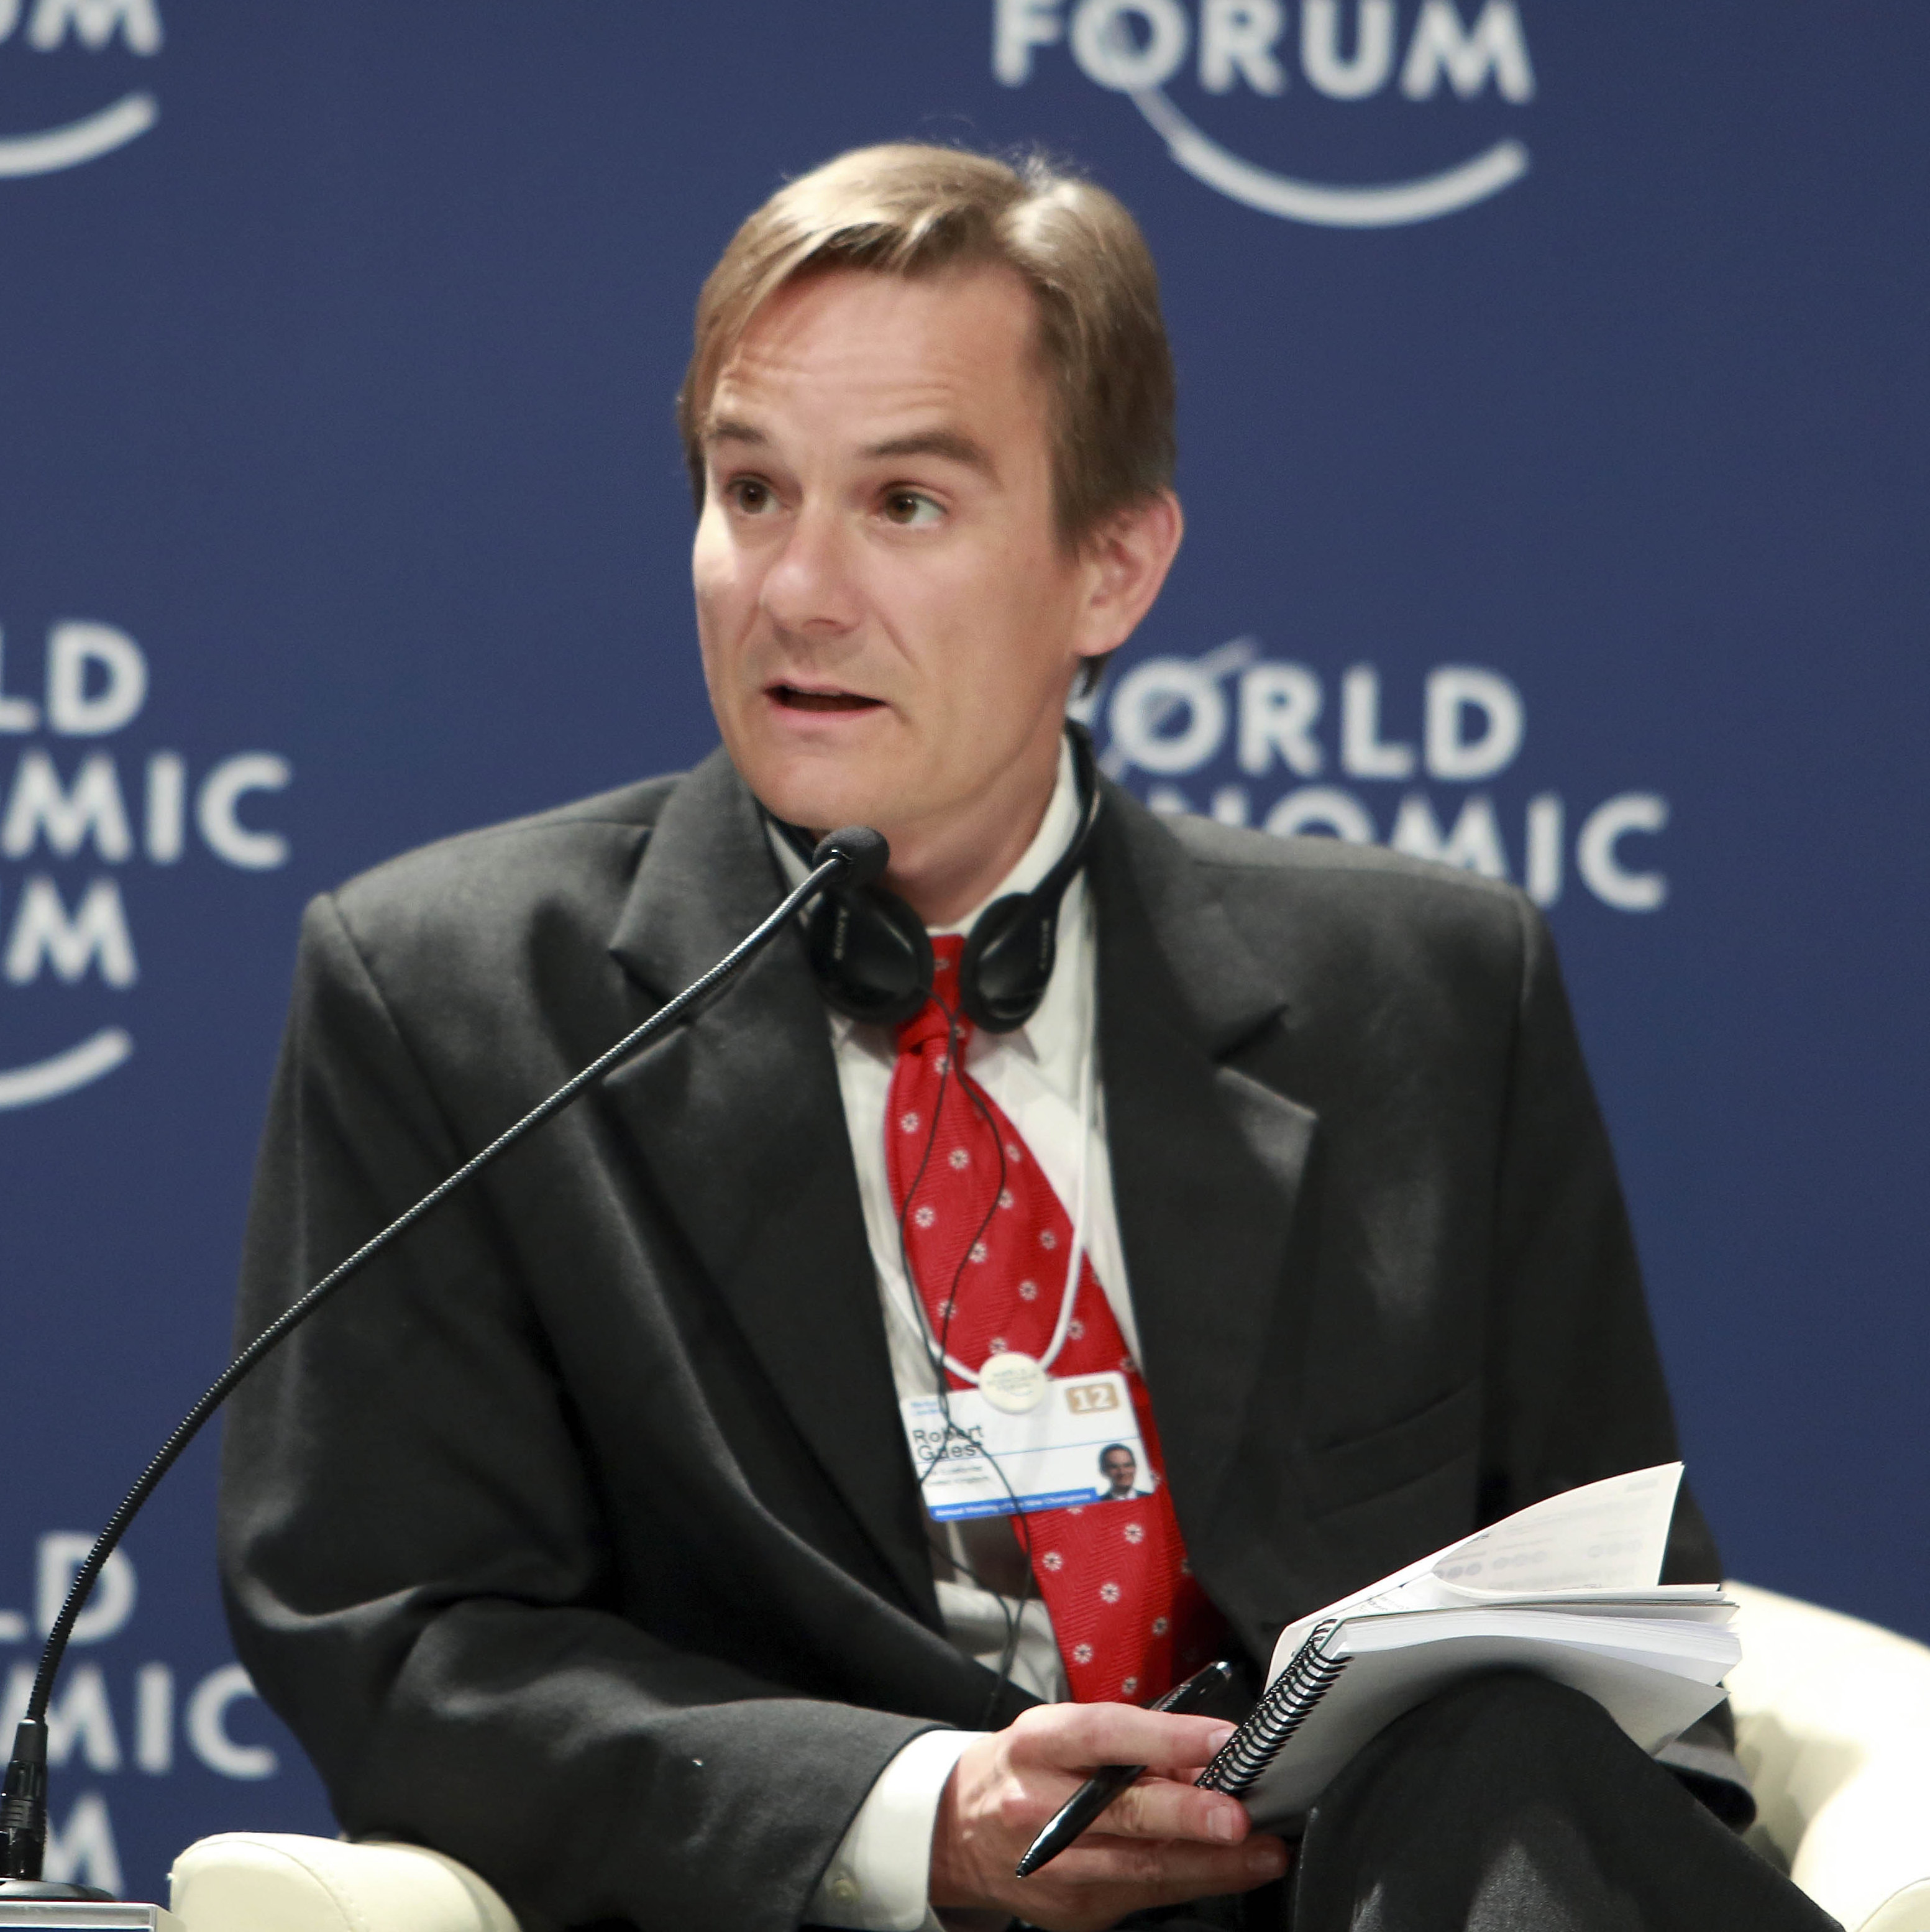 Robert Guest at the [[World Economic Forum